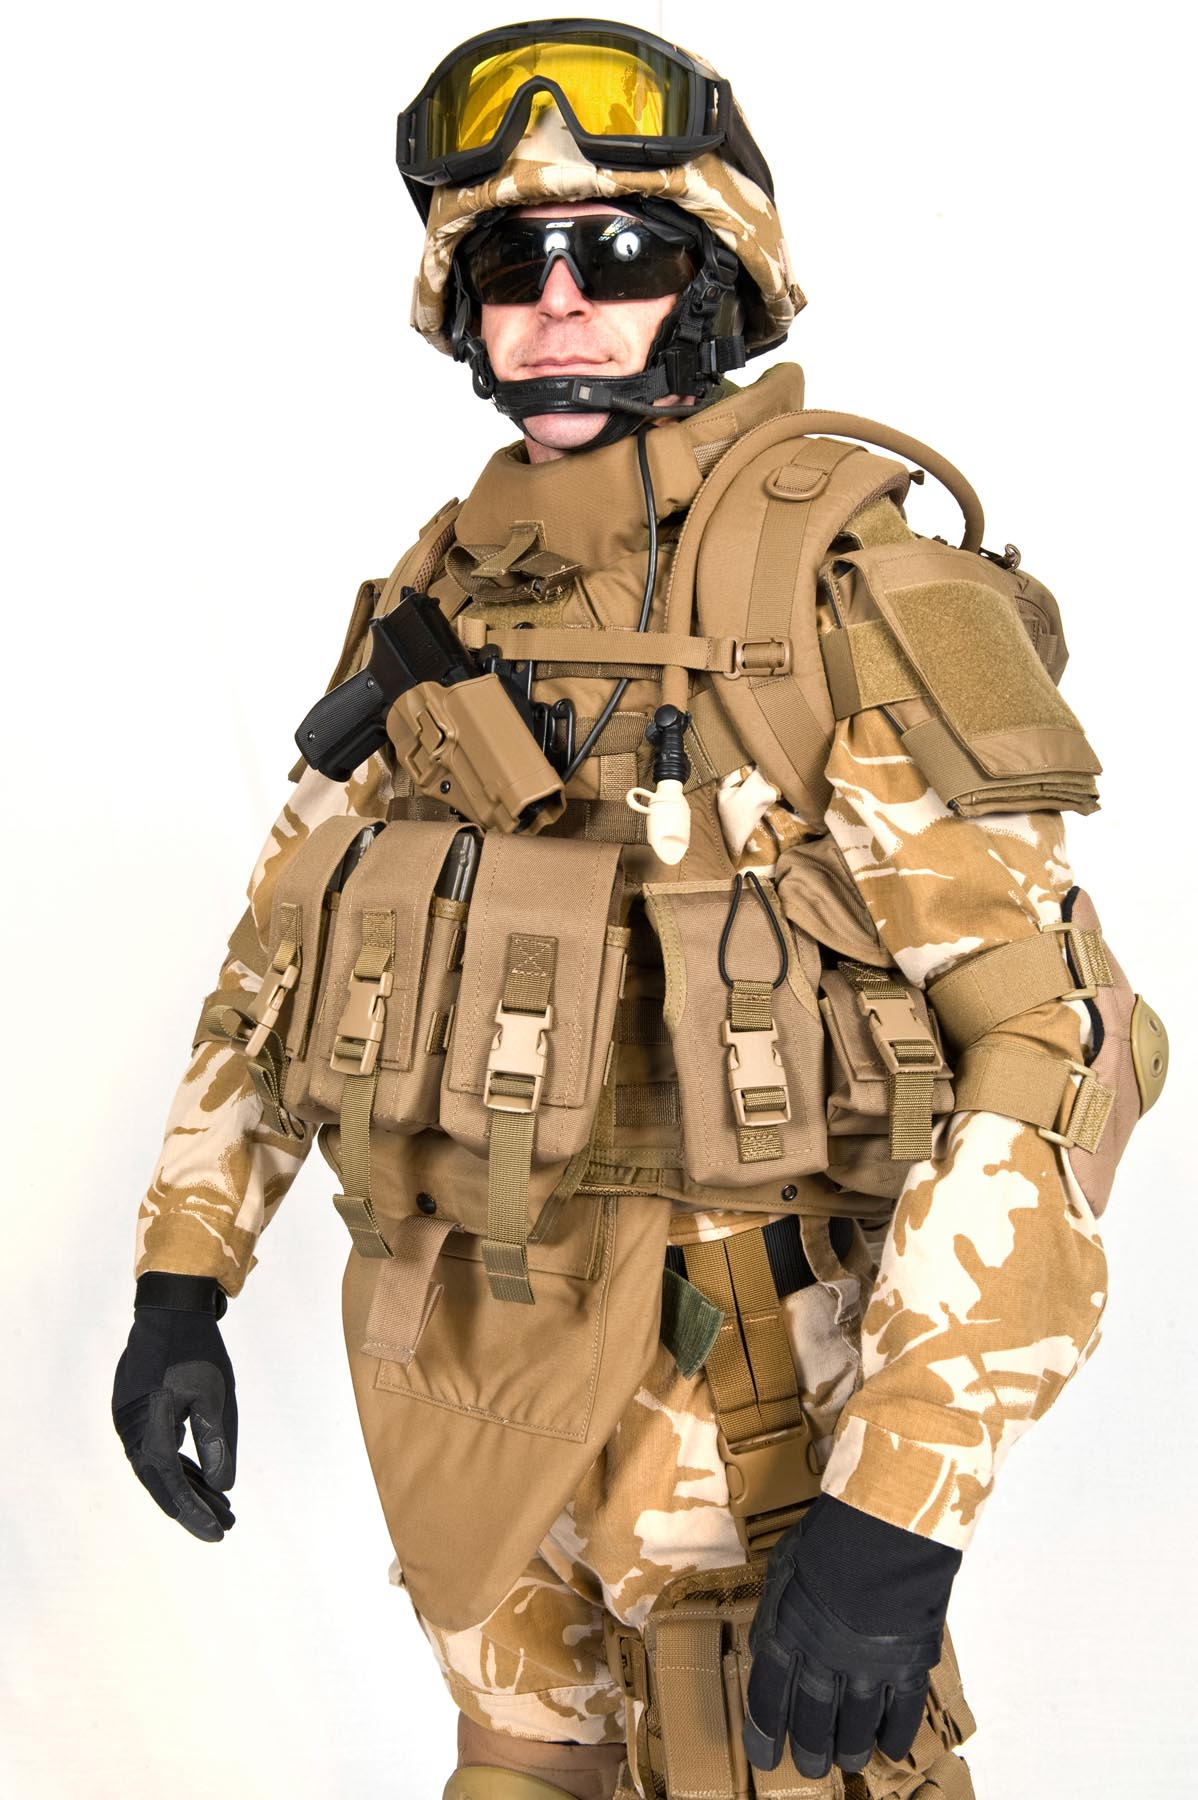 New Combat Kit For NZ Soldiers | Scoop News